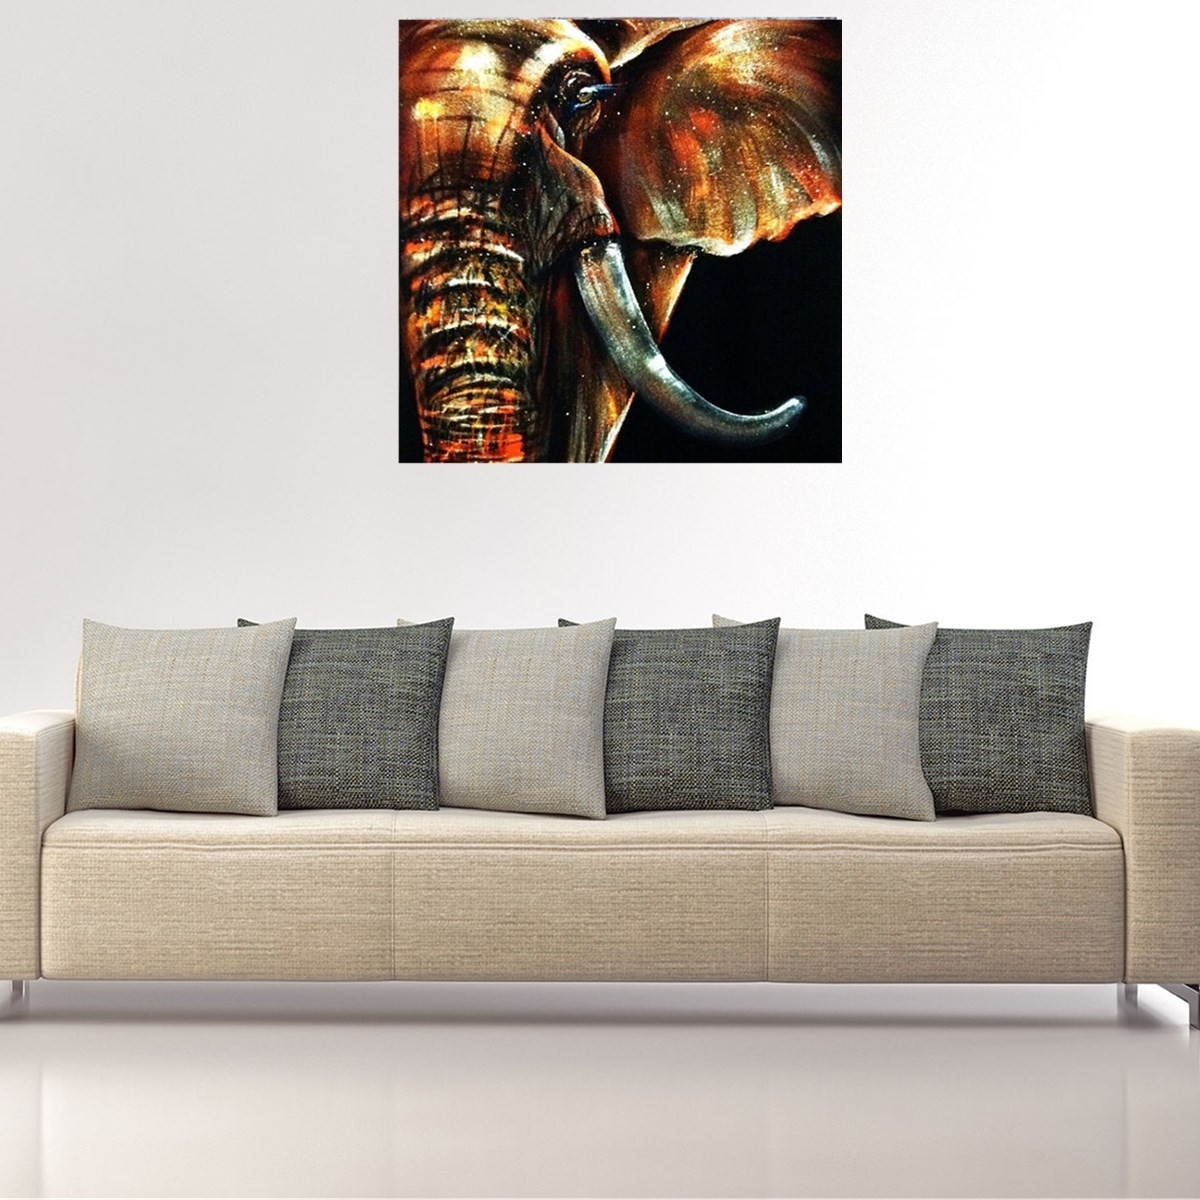 50X50Cm Modern Abstract Huge Elephant Wall Art Decor Oil Painting Regarding 2018 Huge Wall Art (Gallery 12 of 15)